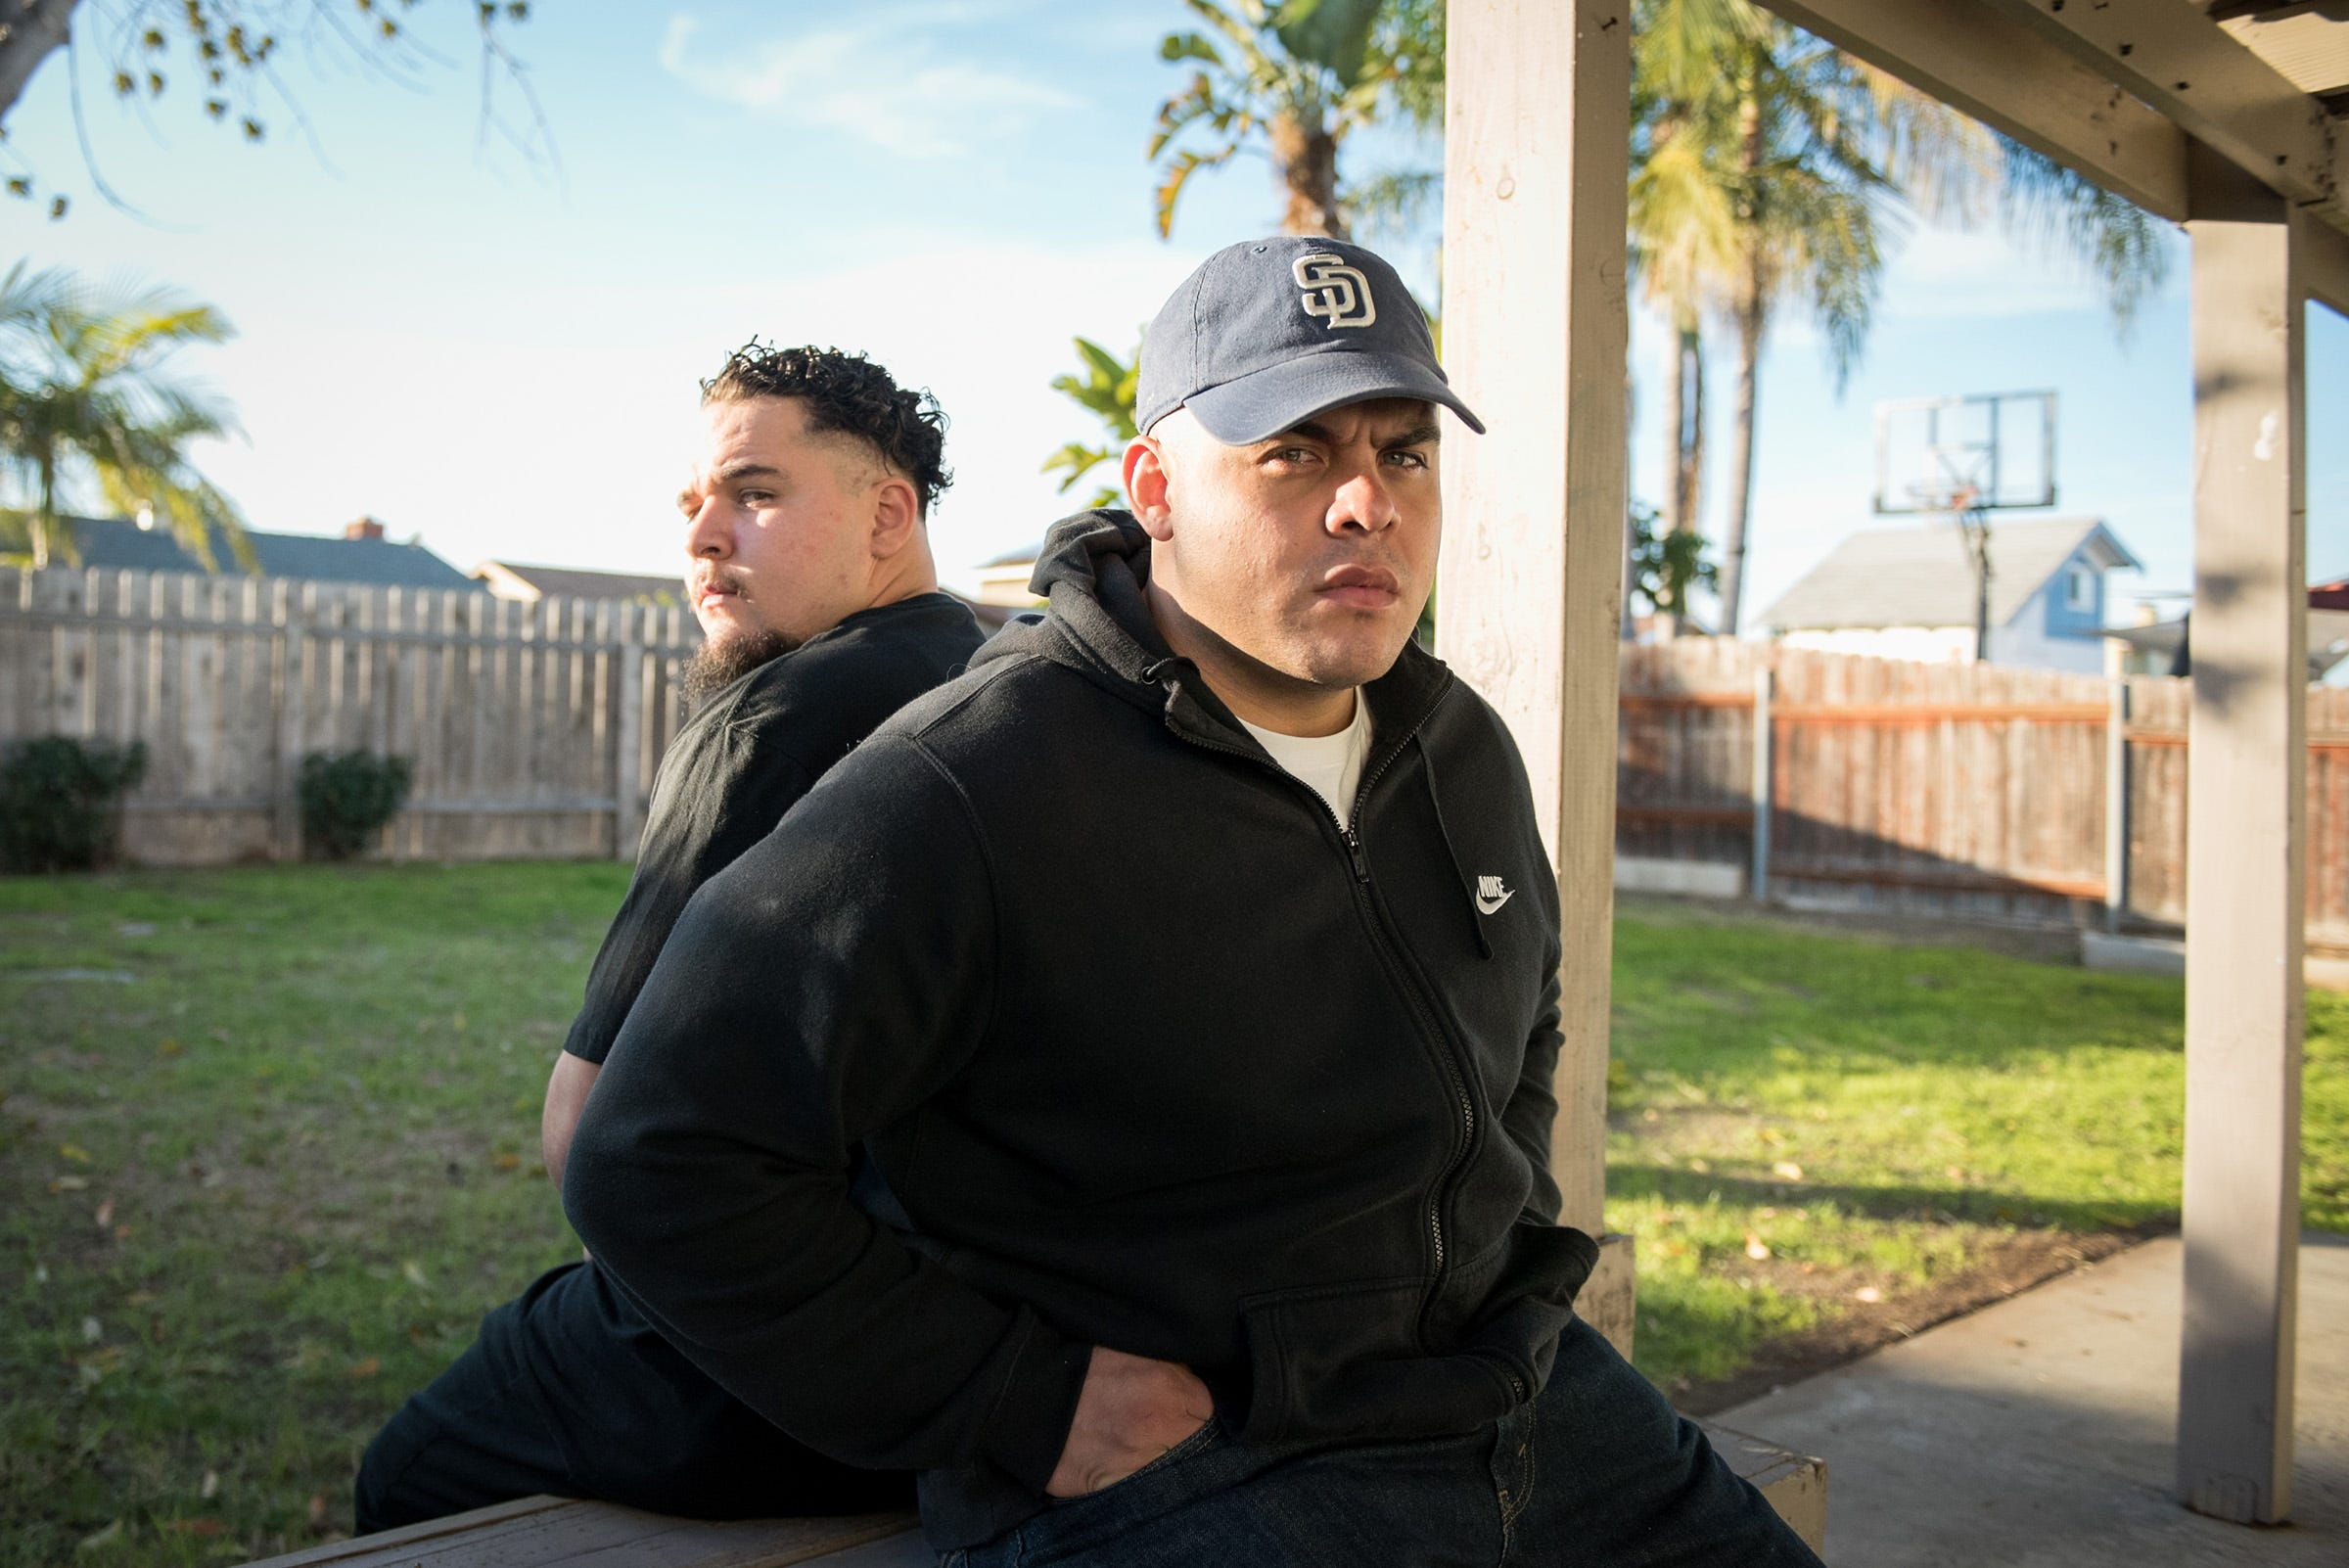 Angel and Noel Sanchez say that the chaos they suffered at home with their mother affected them negatively in school and shattered their dreams to play collegiate sports. They're doing everything they can to make sure that it doesn't happen to their youngest brother who is still in high school.